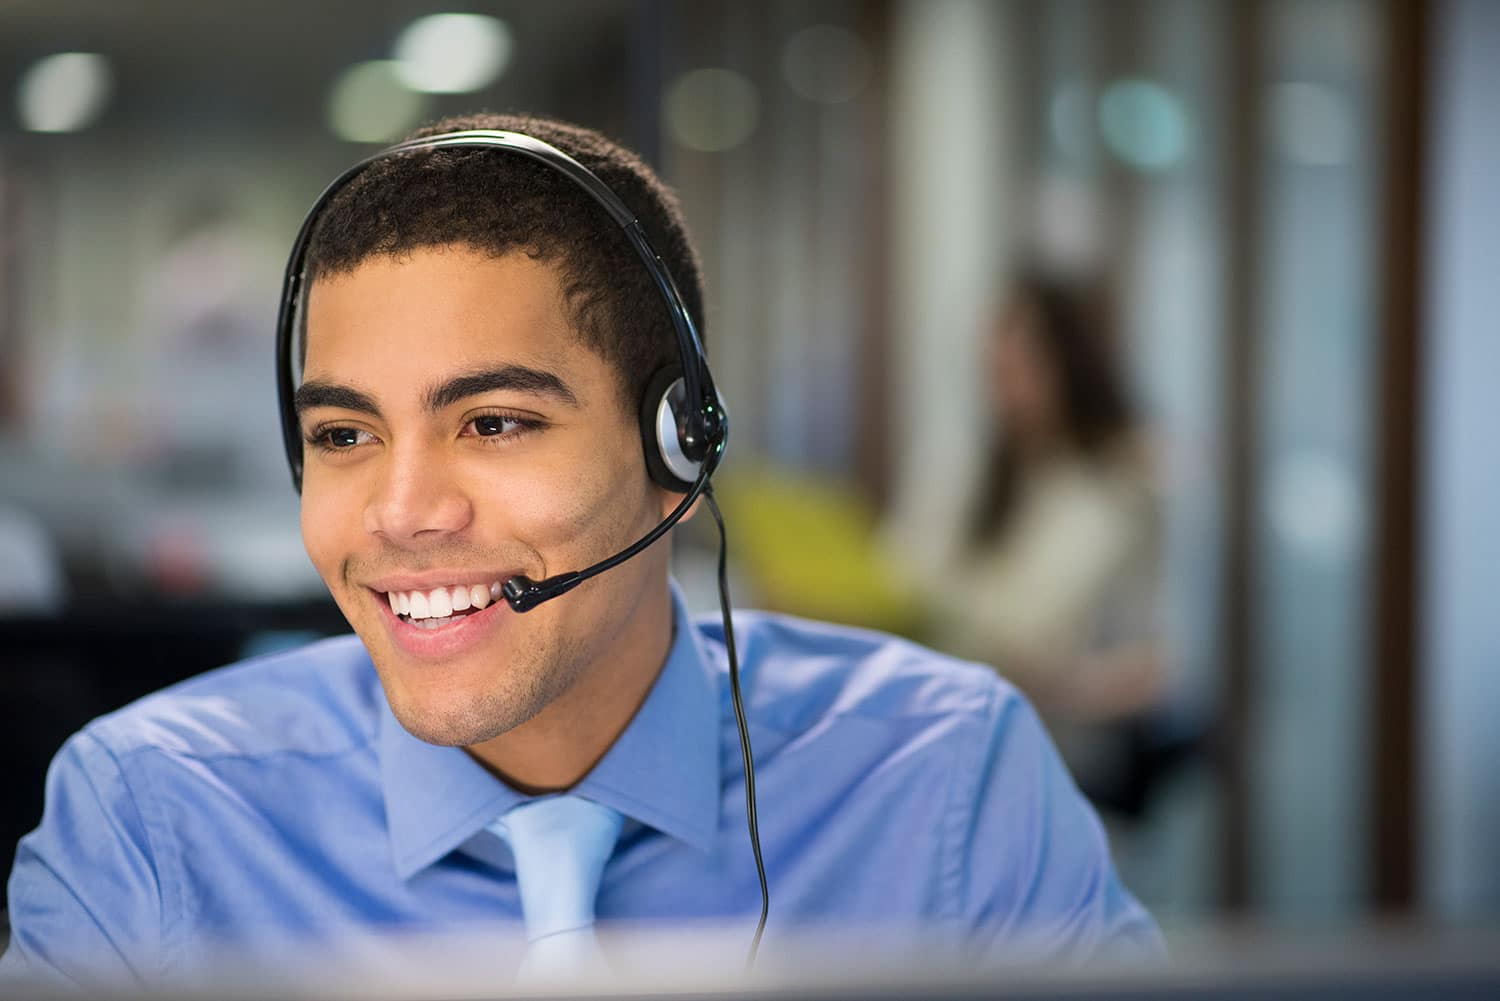 Smiling man using ToldeoTel VoIP system.